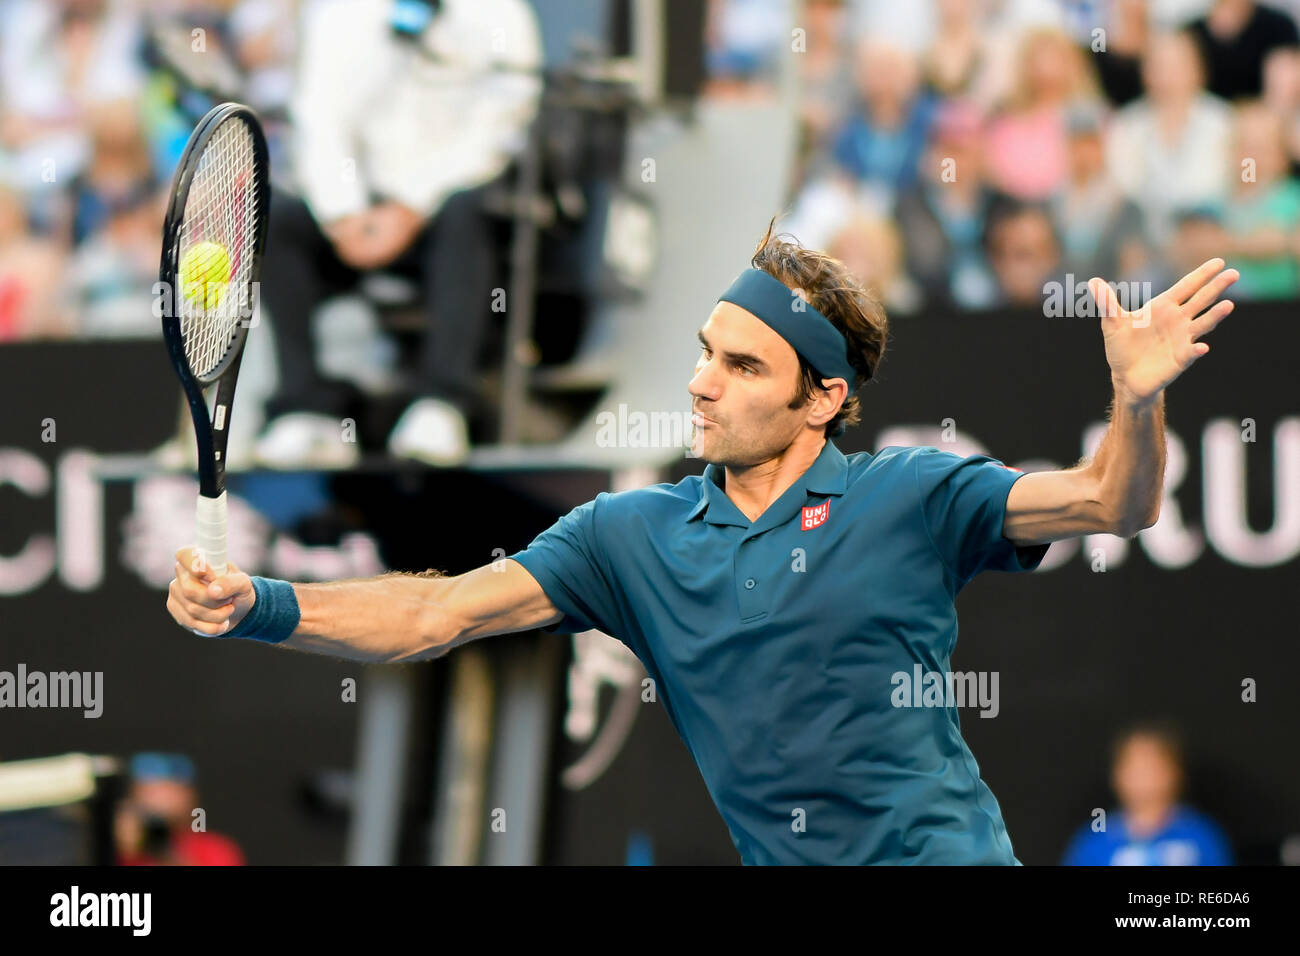 Melbourne, Australia  20th January 2019  3rd seed Roger